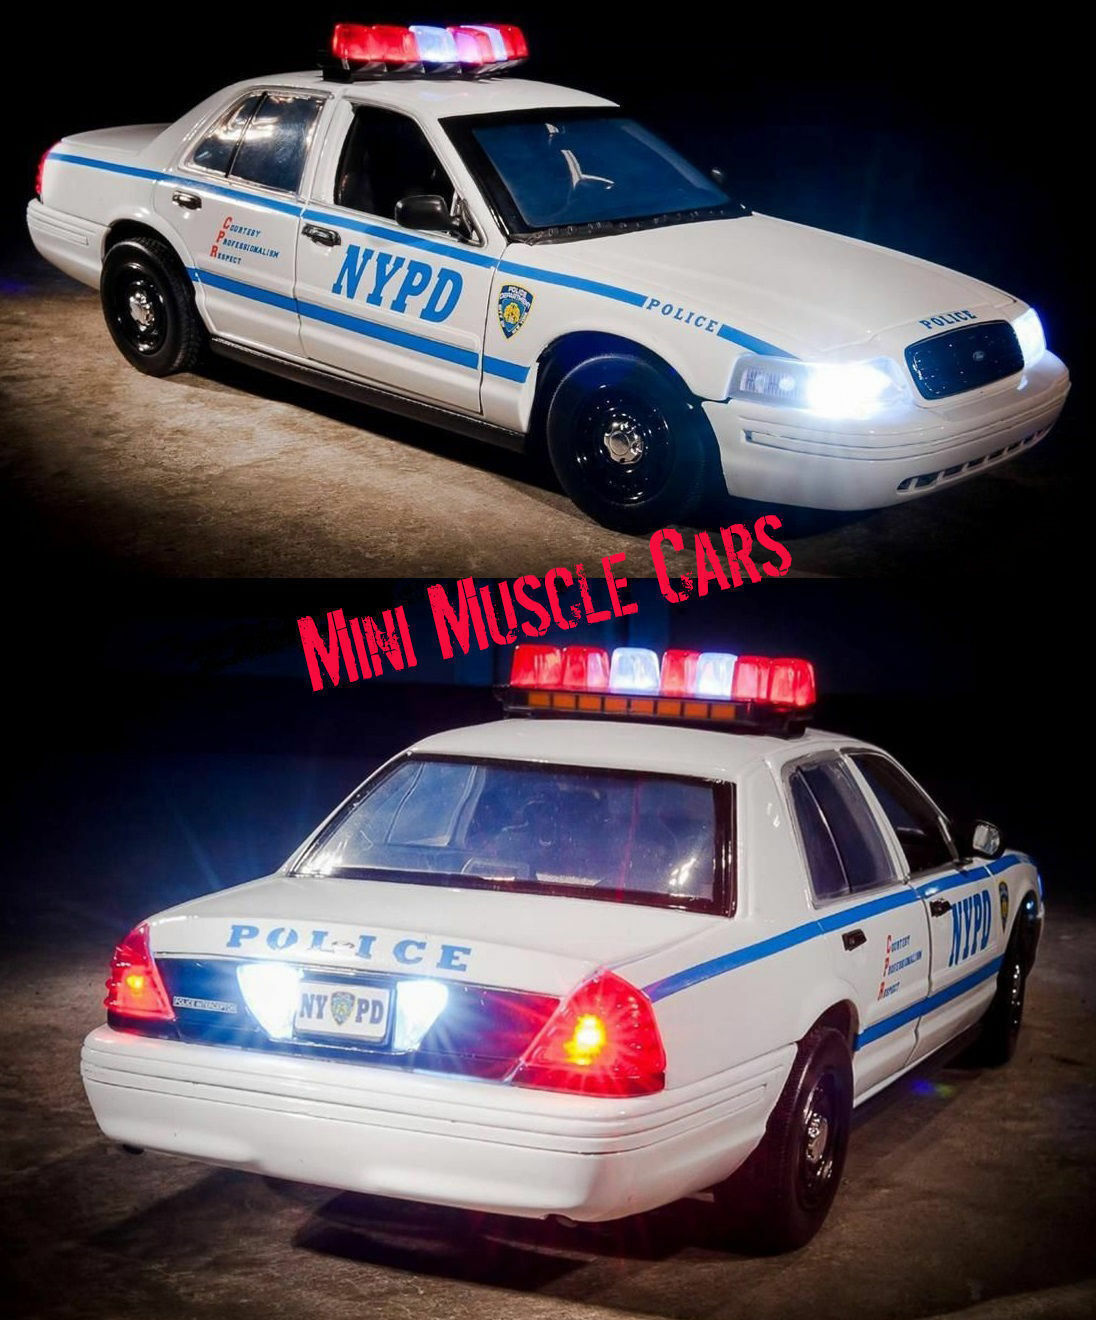 1 18 GrünLIGHT - 2001 FORD CROWN VICTORIA NYPD NY POLICE CAR LIGHTS SOUNDS